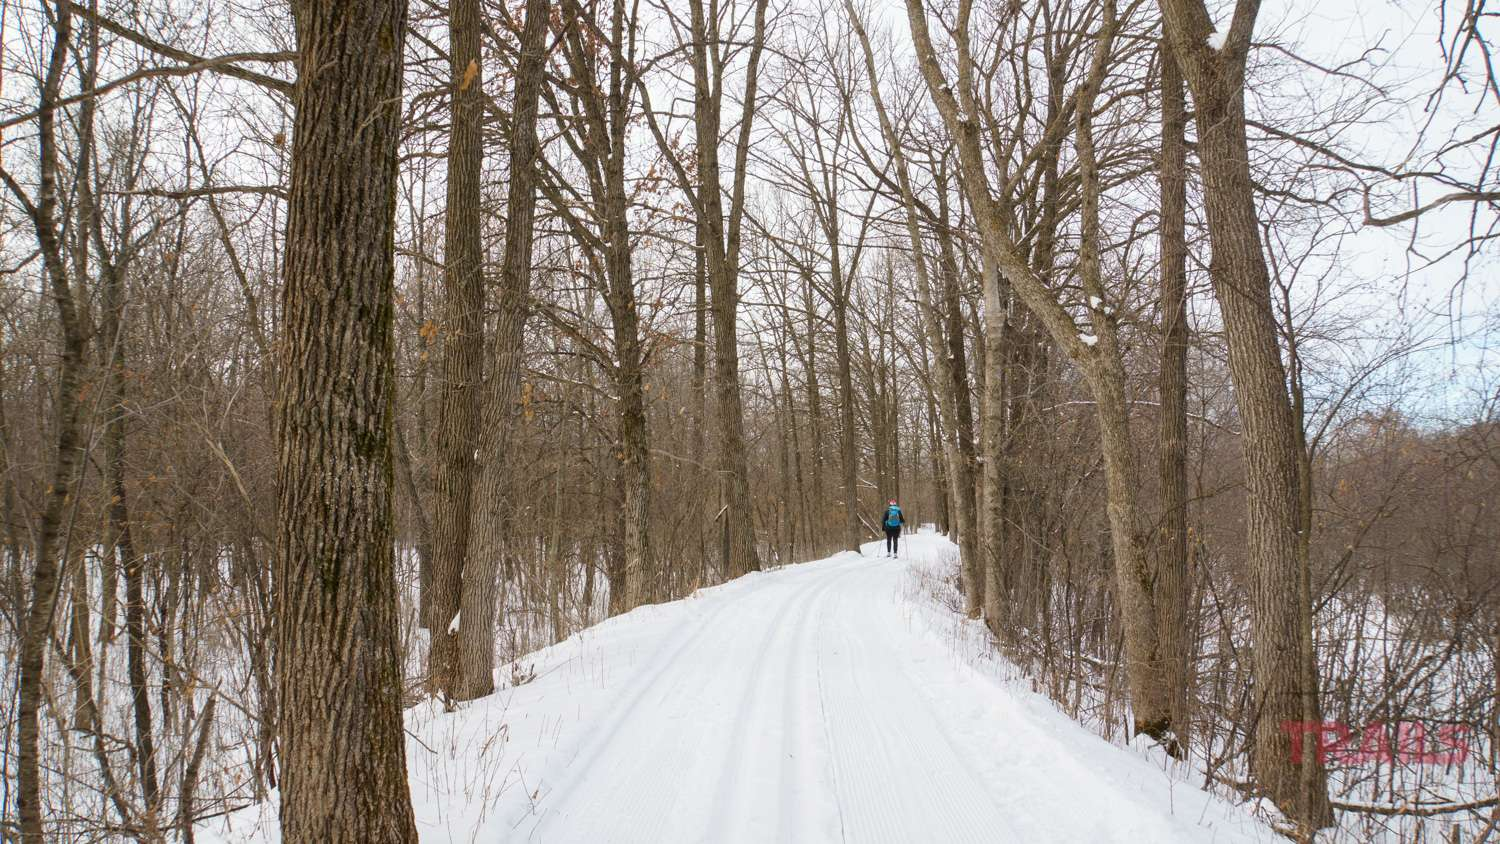 A woman skis along a ridge trail in a forest